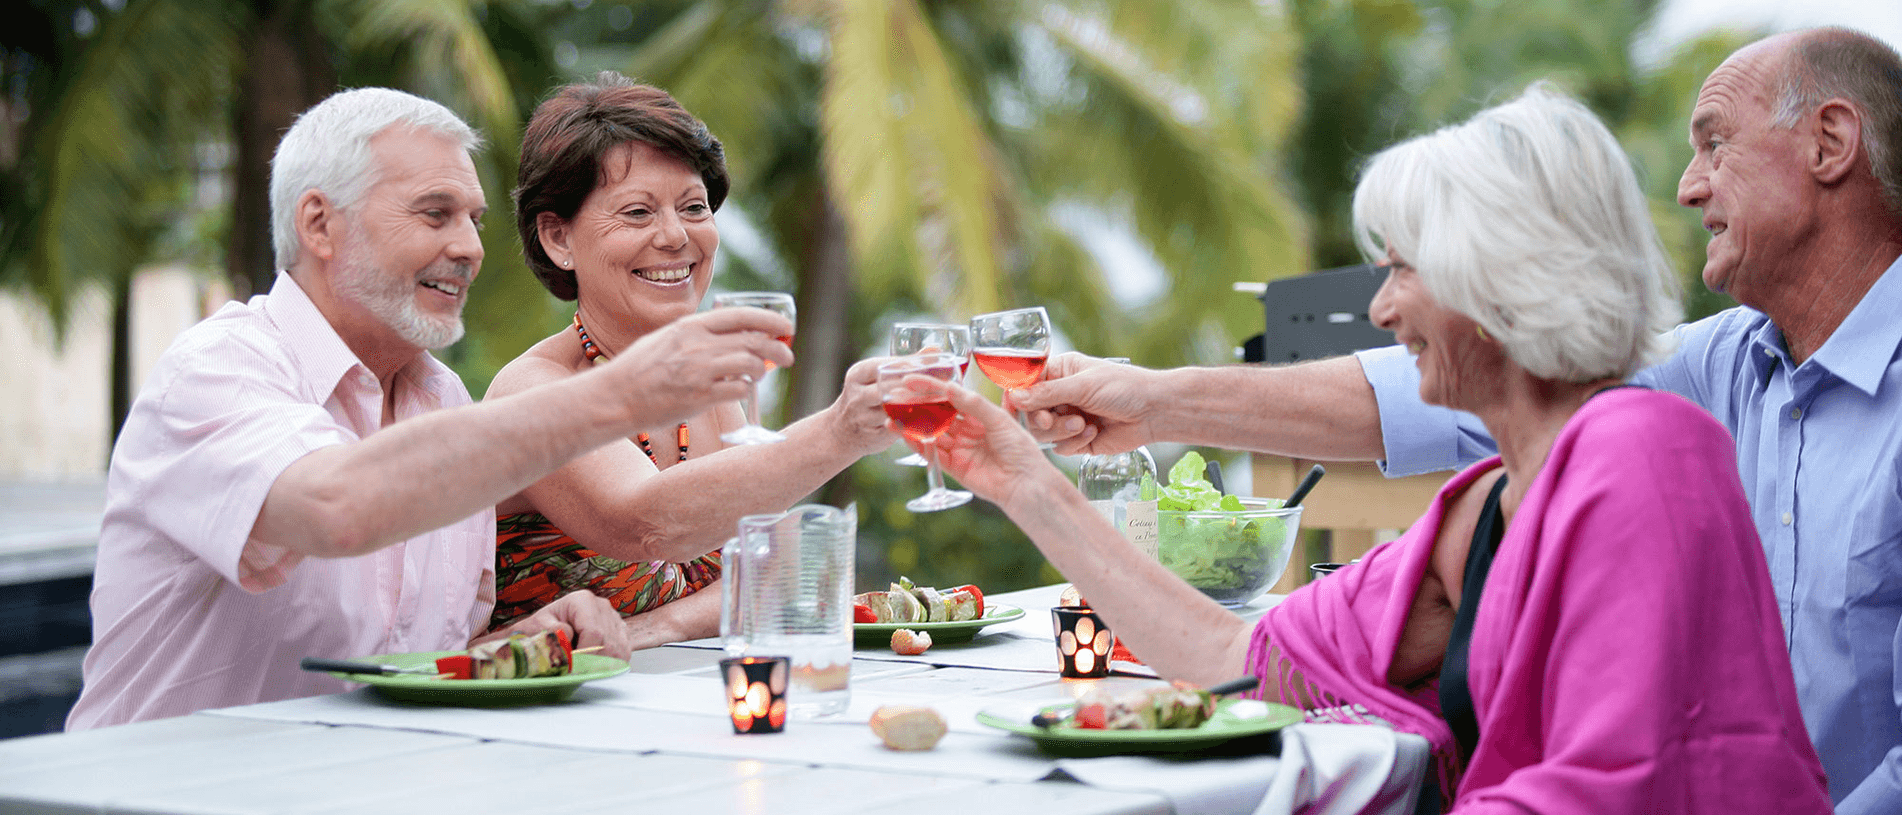 group-of-retirees-having-a-drink-celebrating